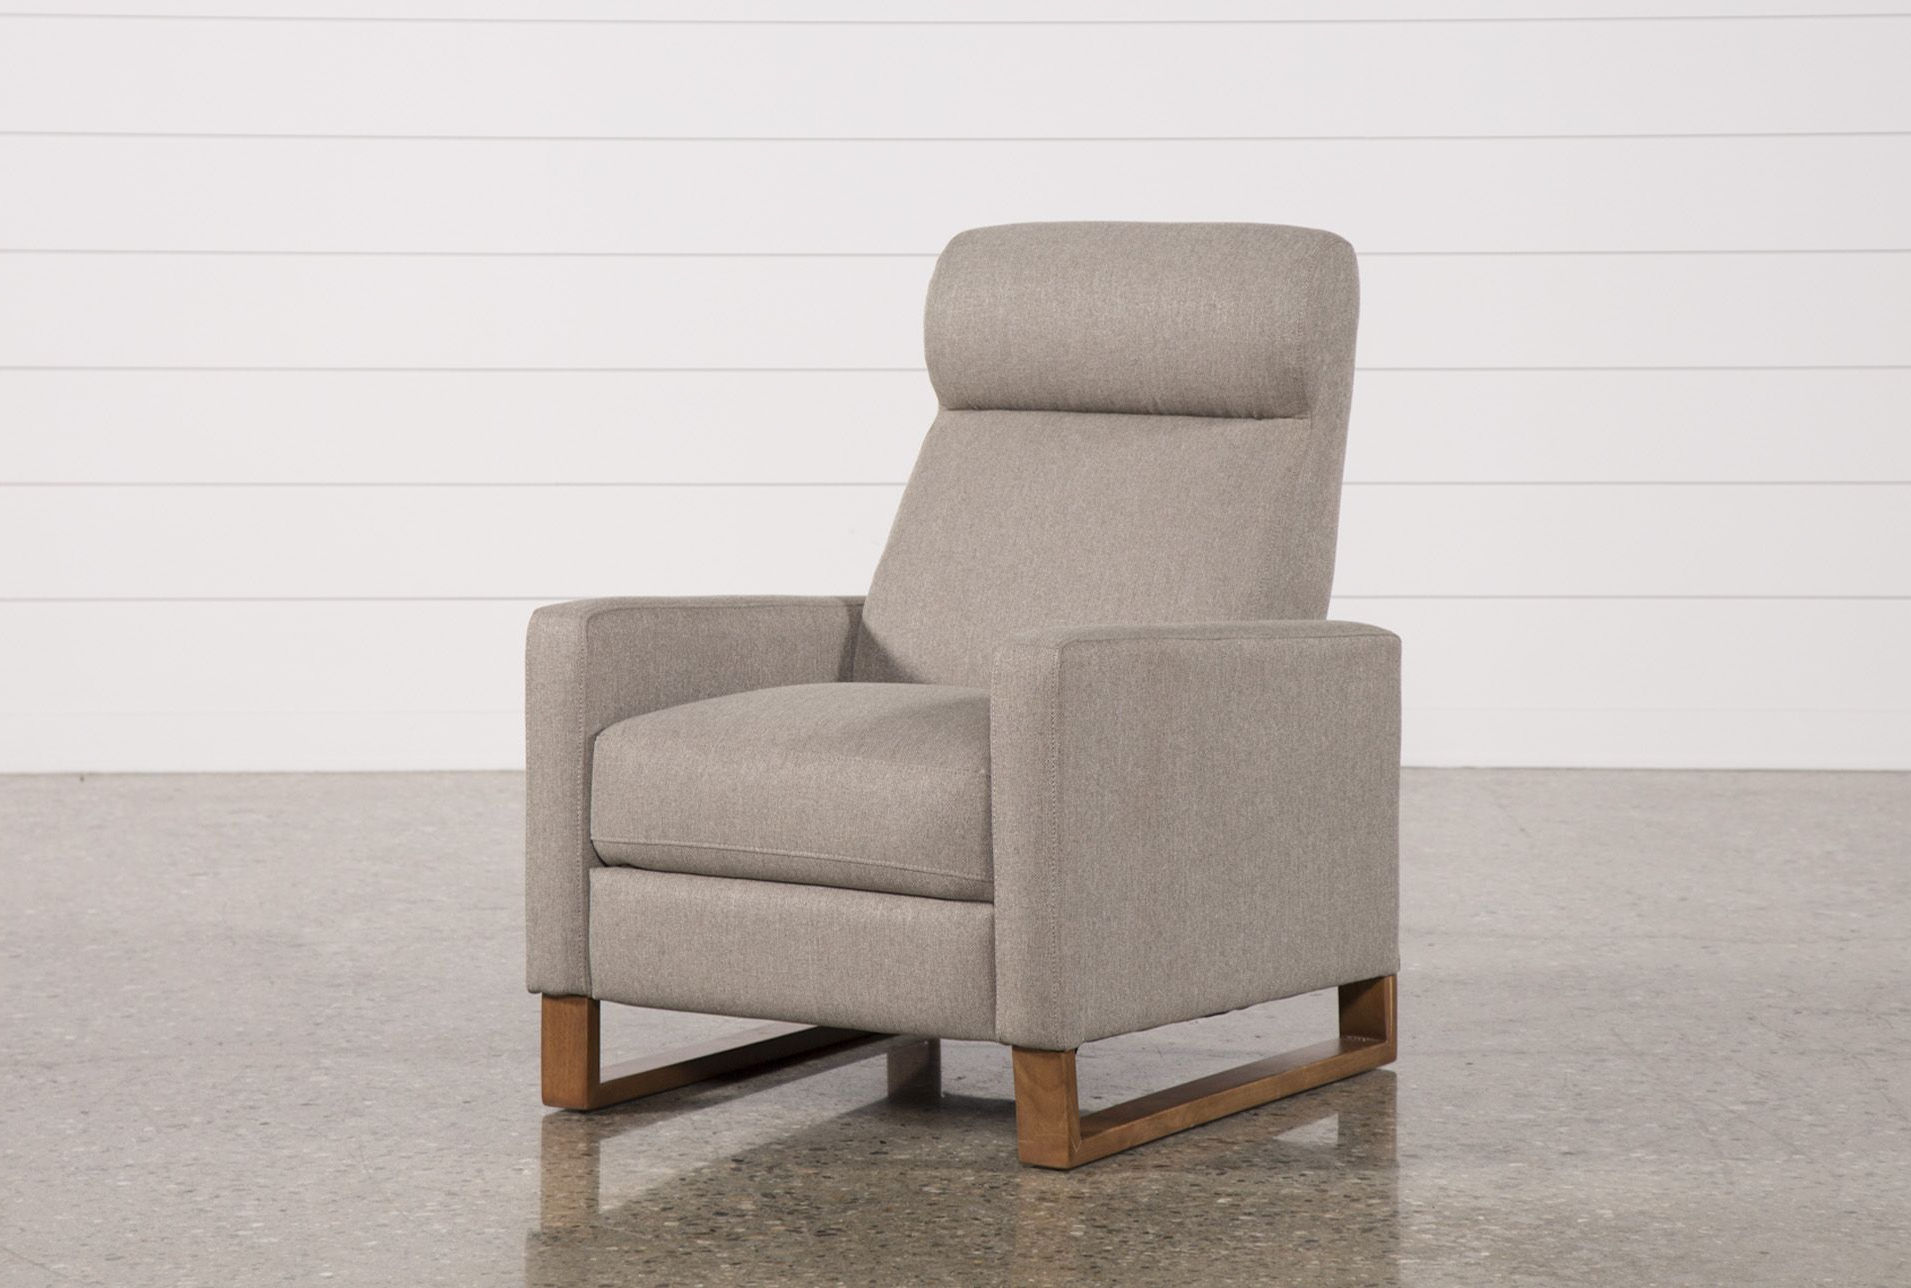 Recliner, Storms And Products Inside Newest Franco Iii Fabric Swivel Rocker Recliners (View 17 of 20)